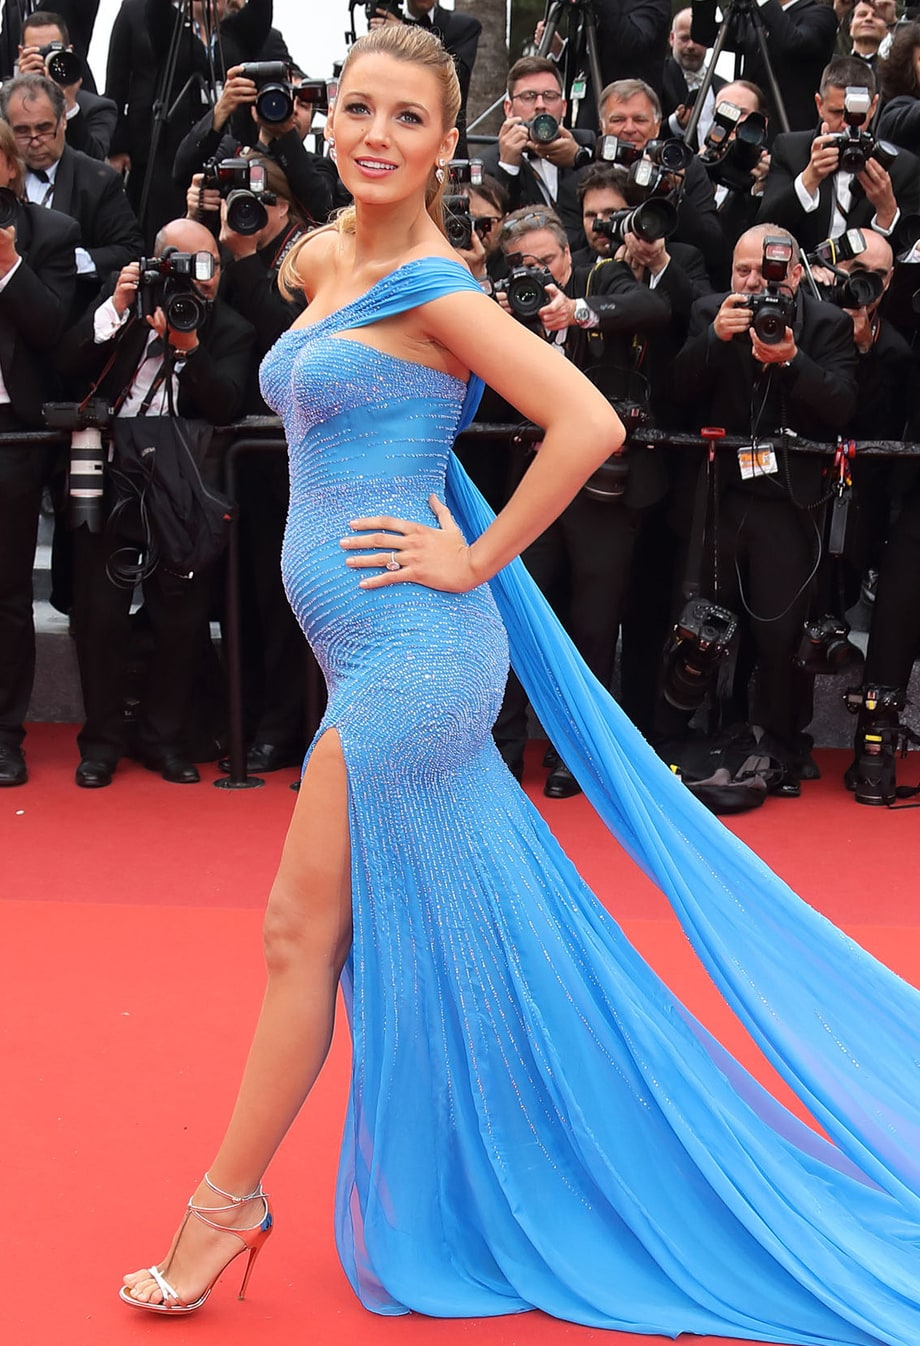 Blake Lively the Most Stunning Pregnant Woman